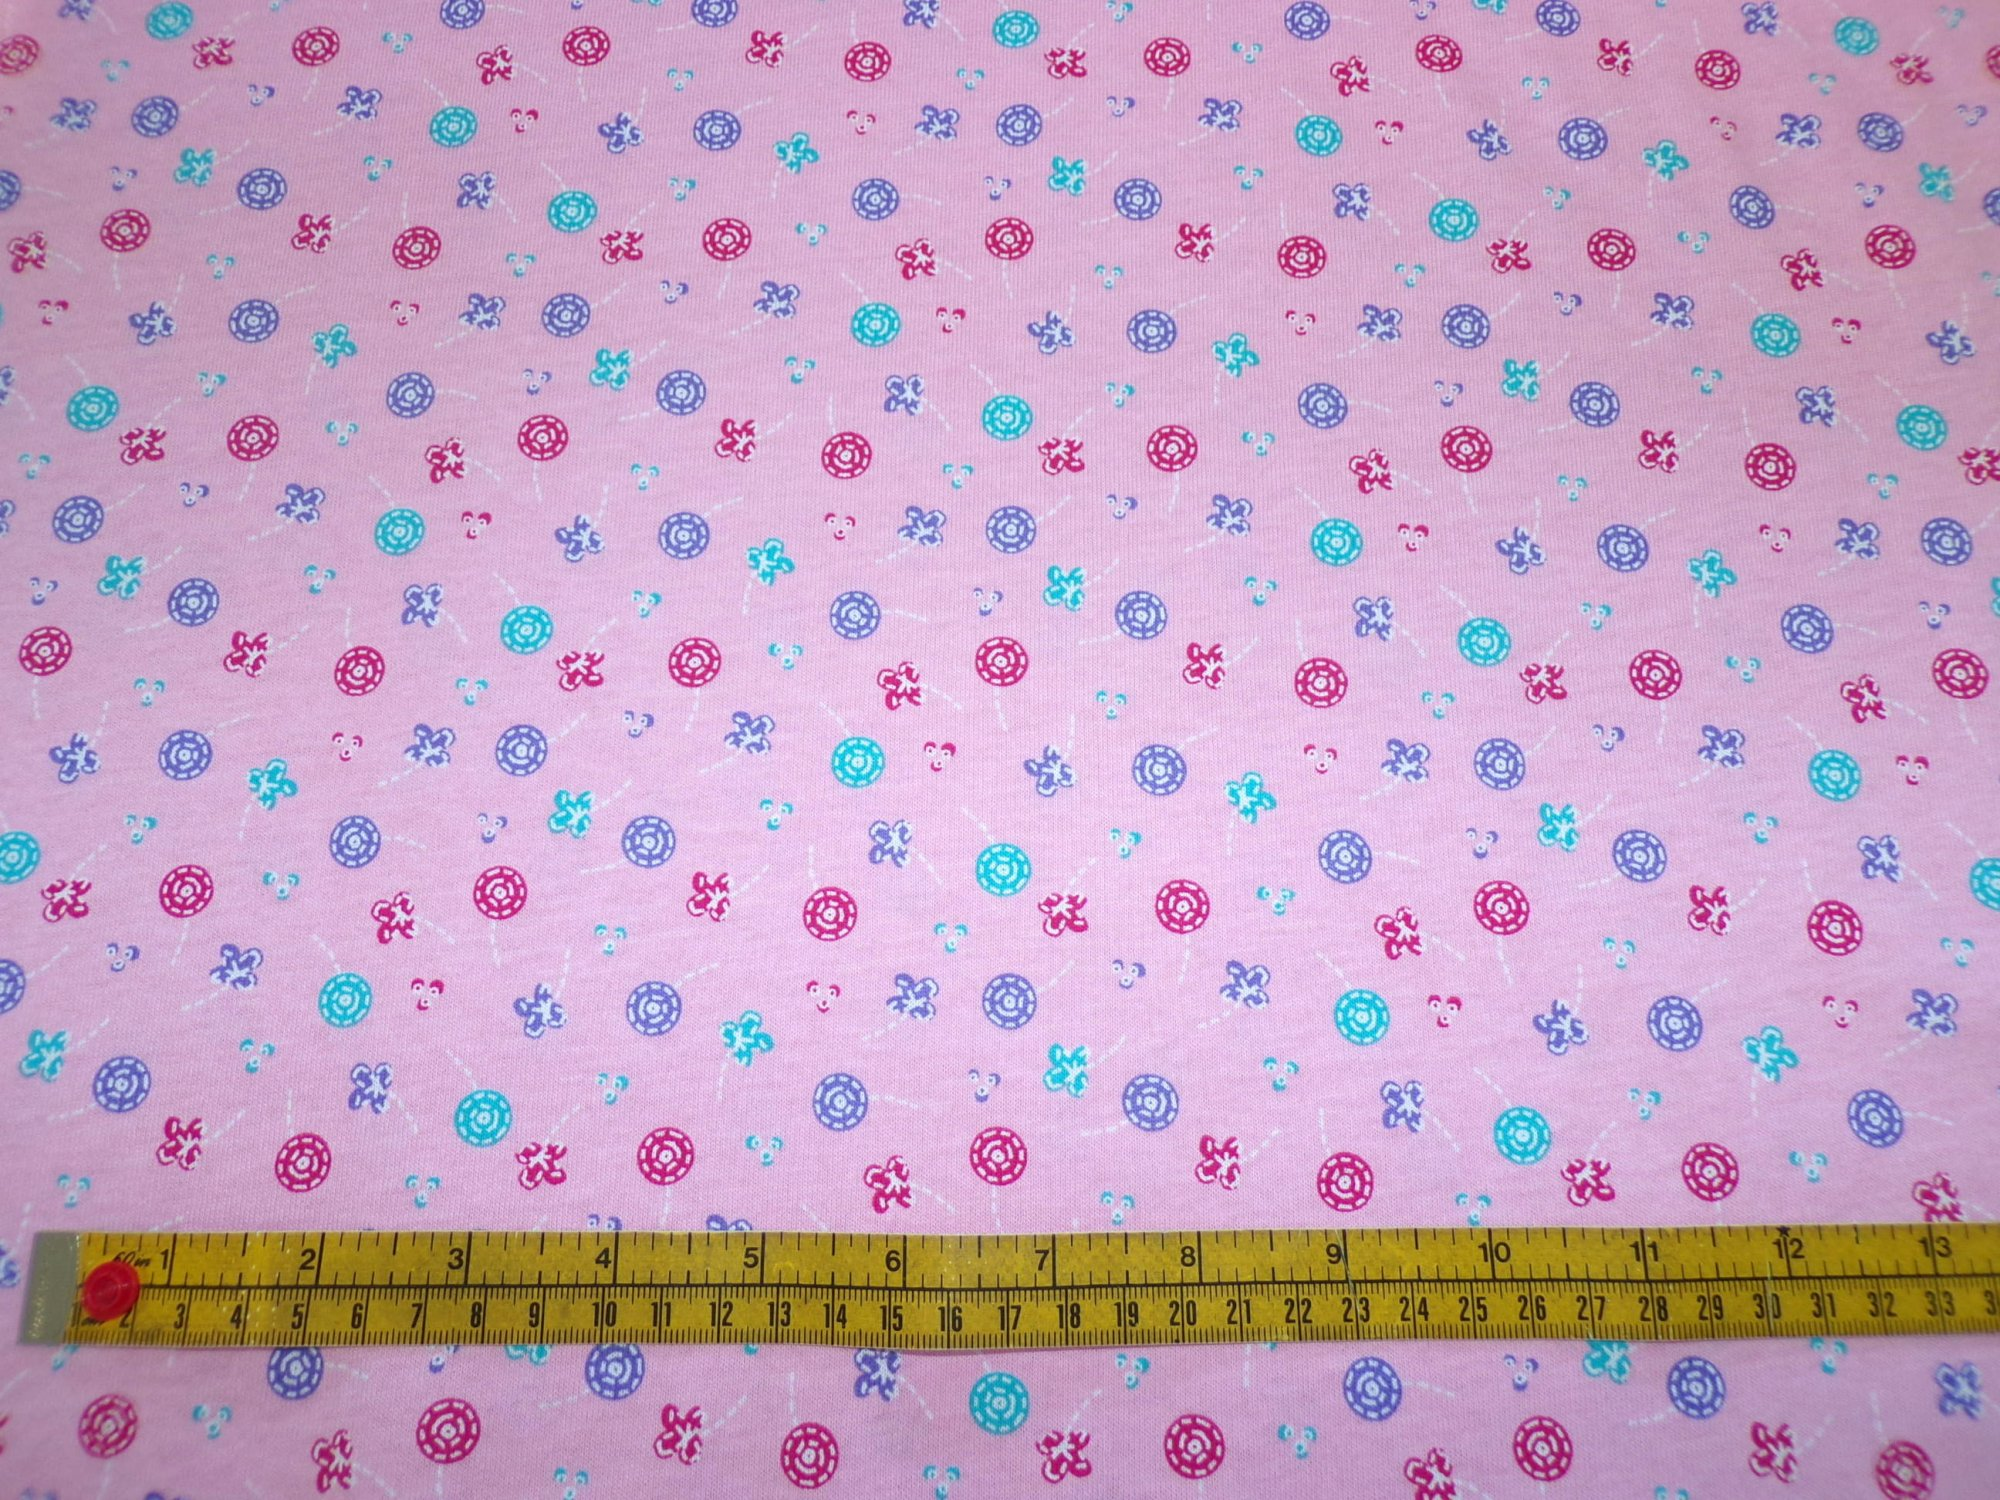 Cotton Jersey - Pink Buttons and Flowers